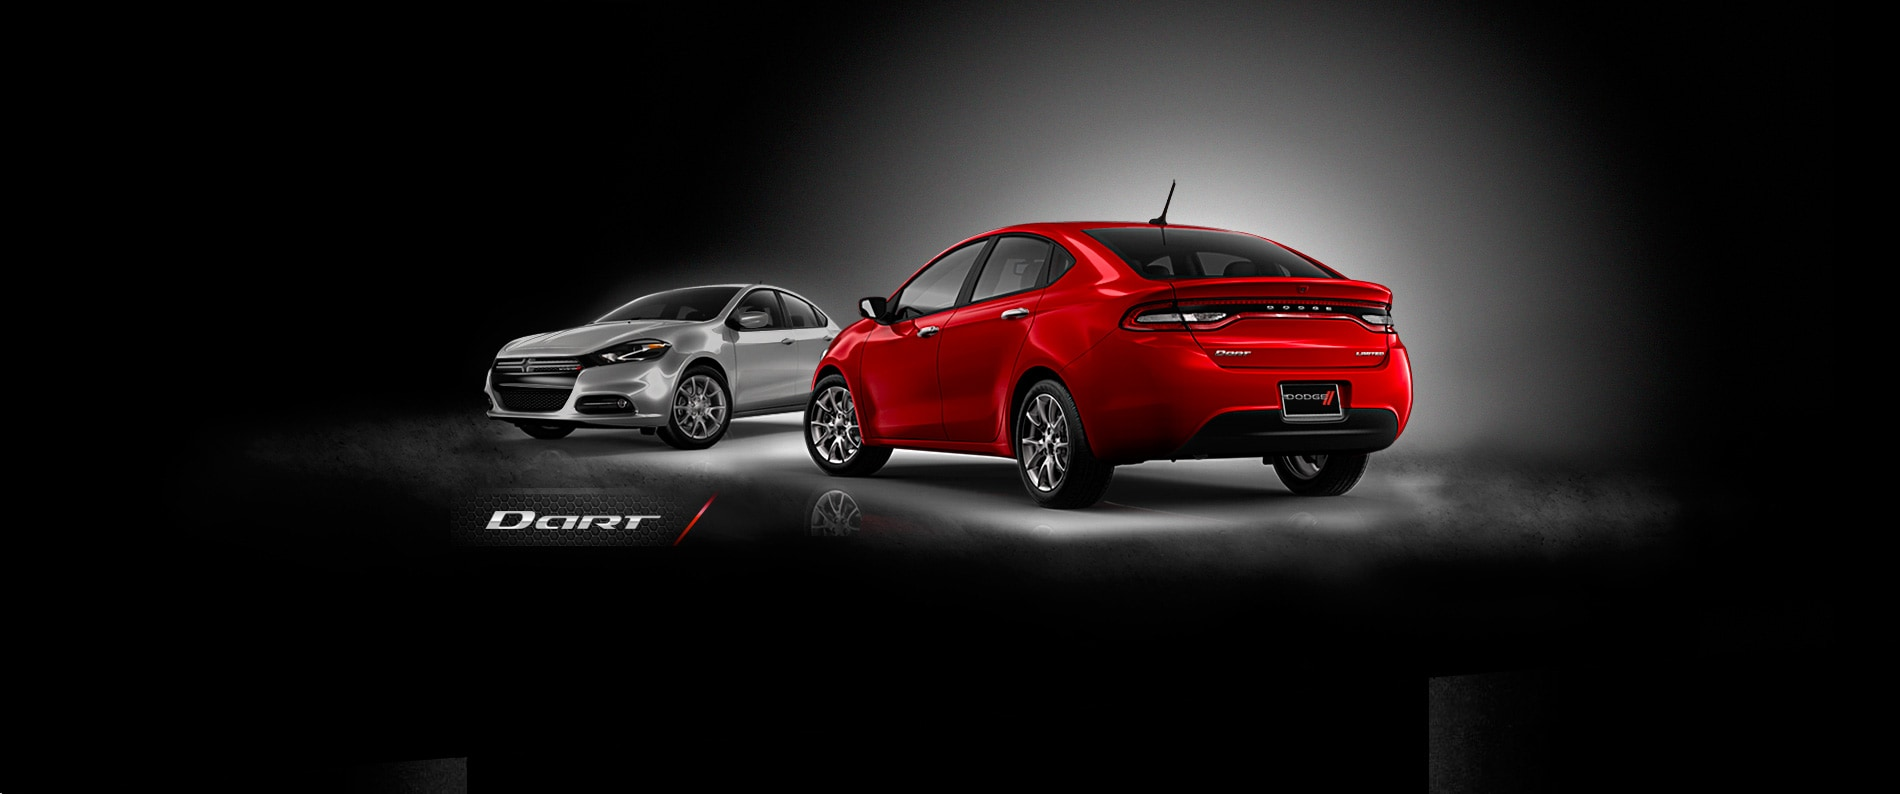 The New 2013 Dodge Dart